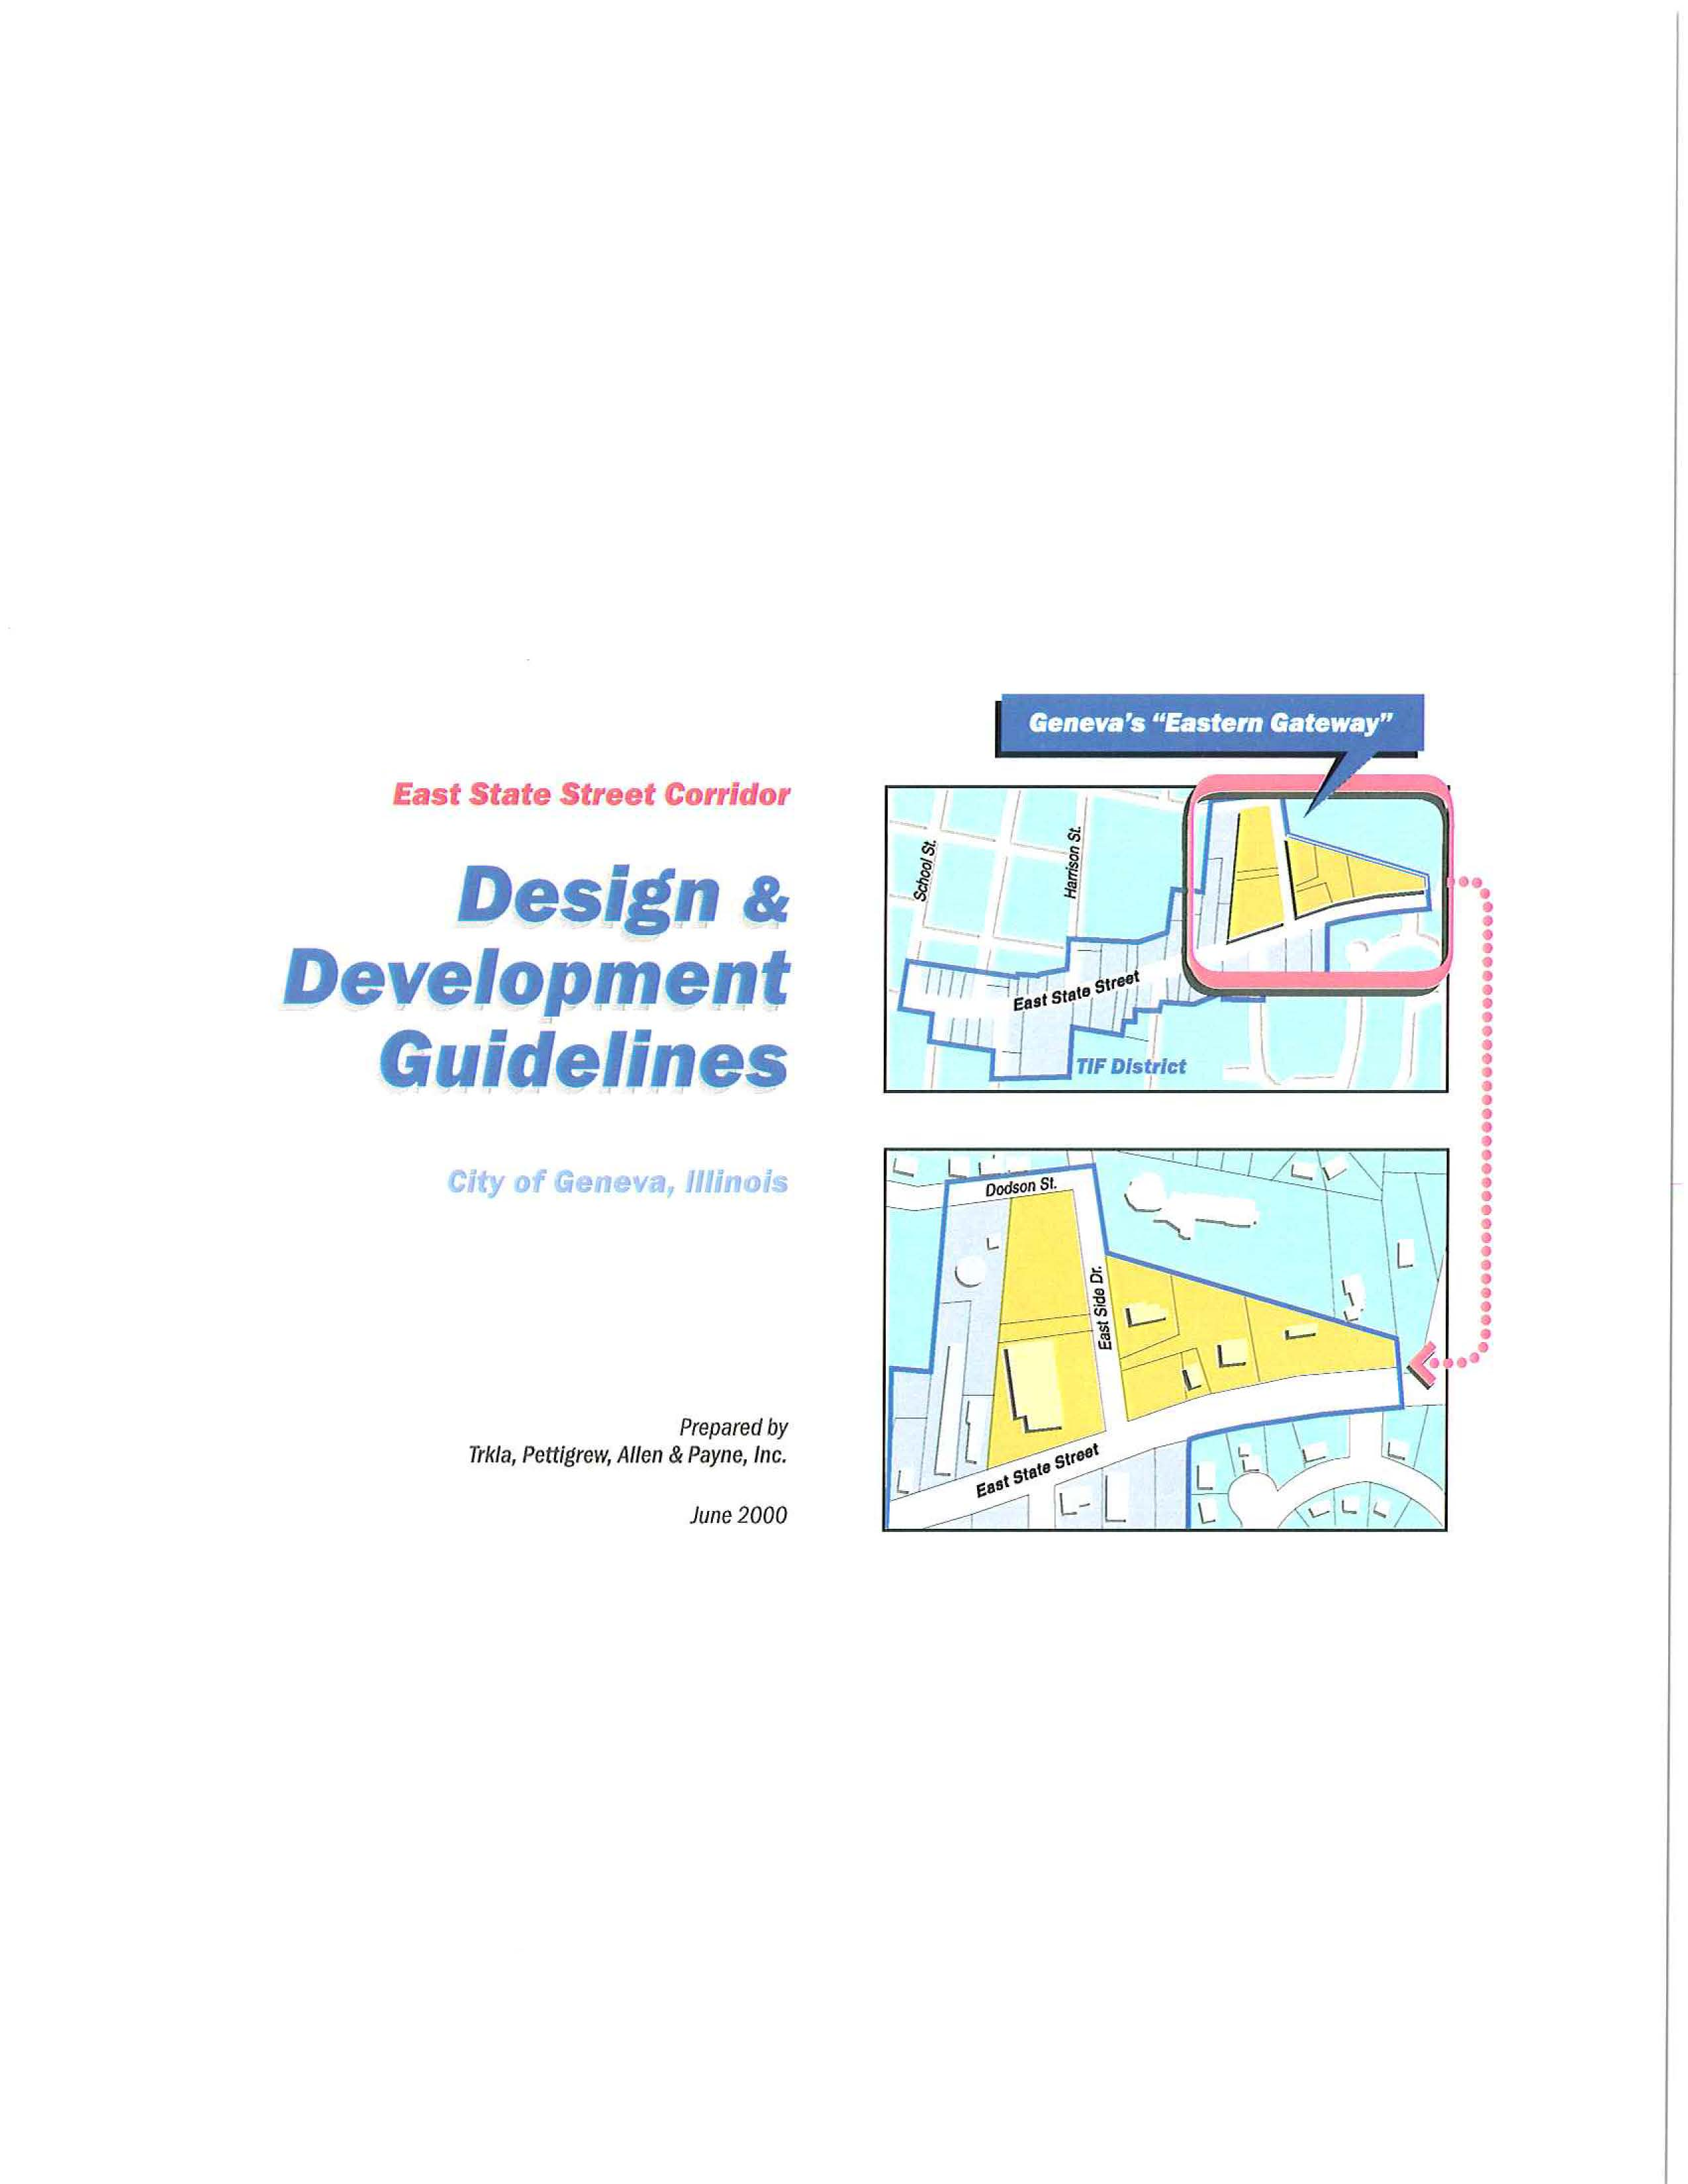 Design and Development Guidelines